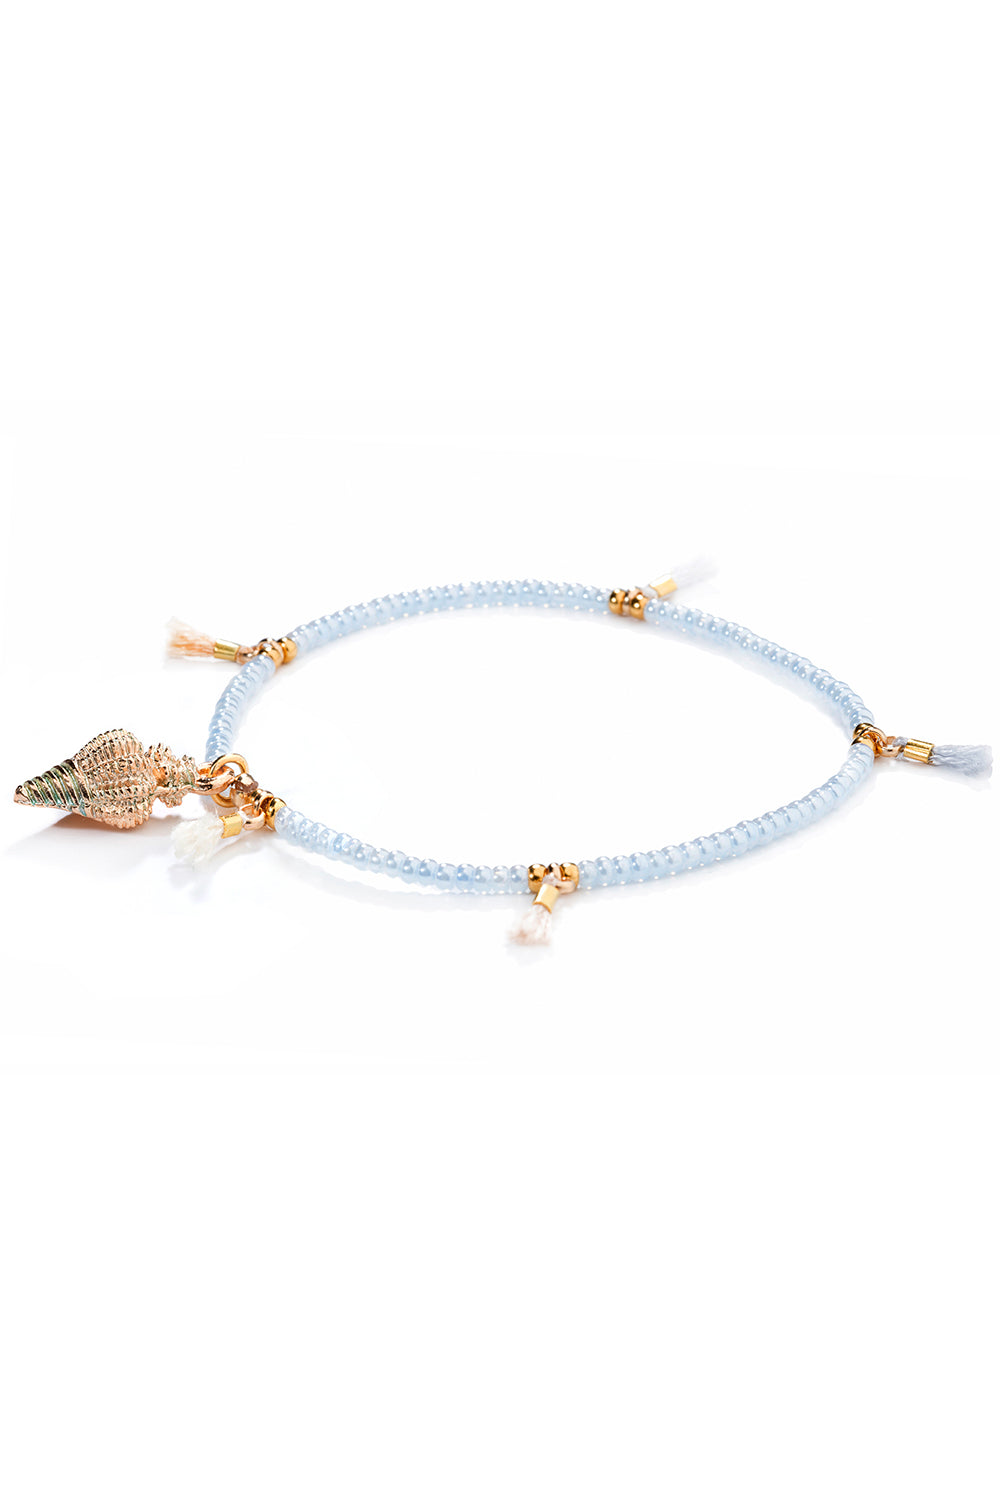 Under The Sea True Tulip Bracelet